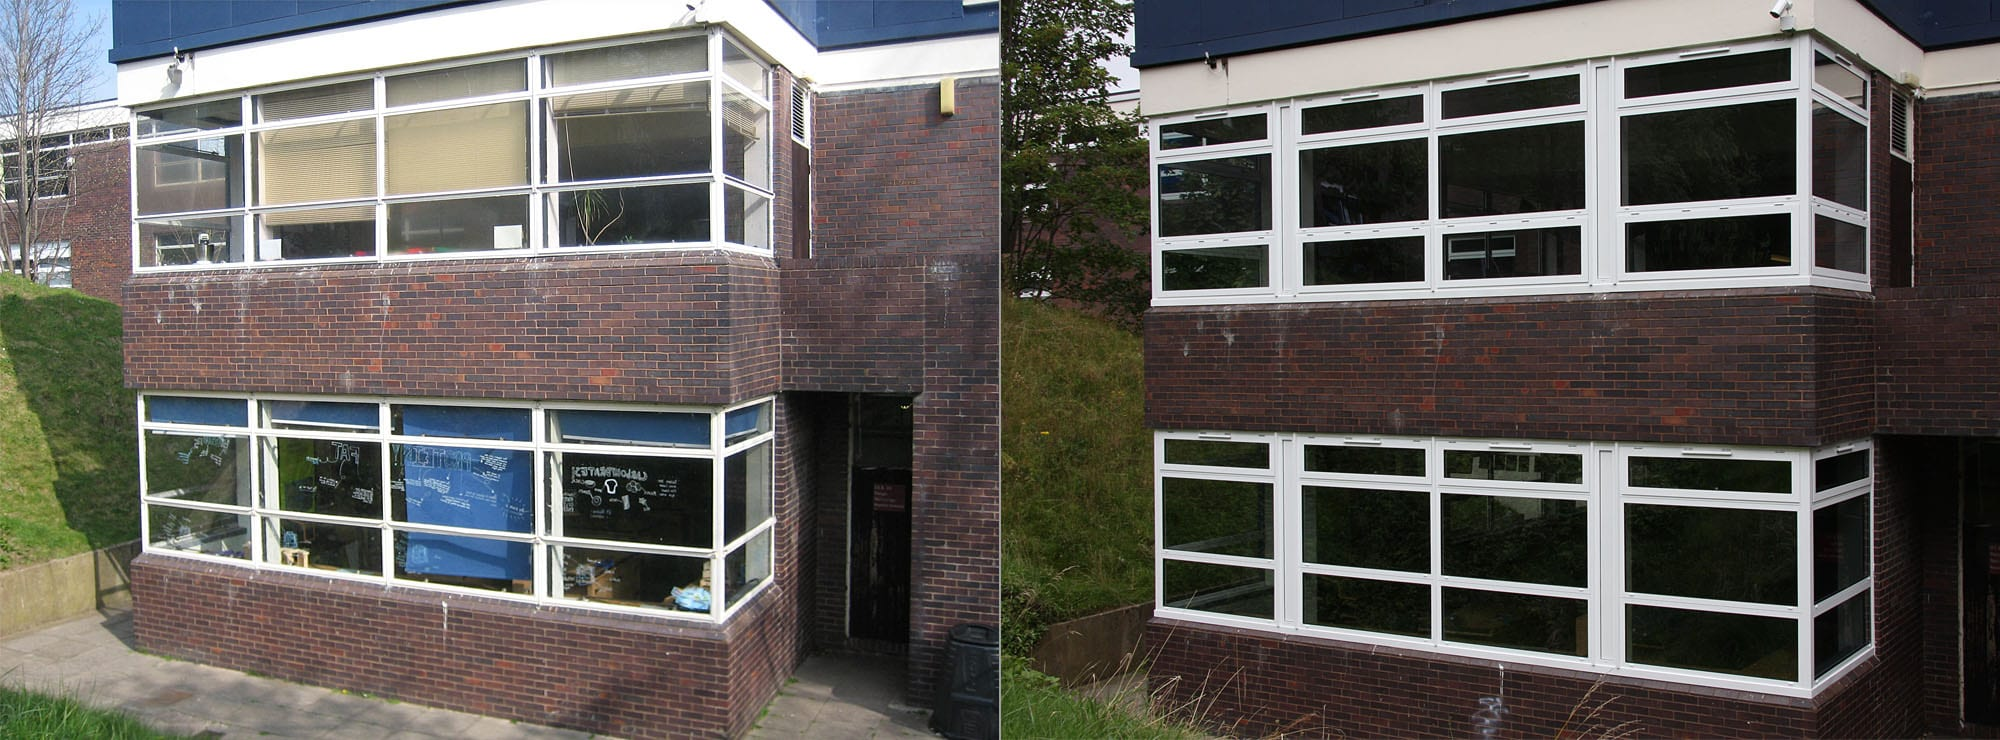 <strong>Comprehensive School in West Midlands</strong>Replacement steel windows with white commercial aluminium to all elevations.